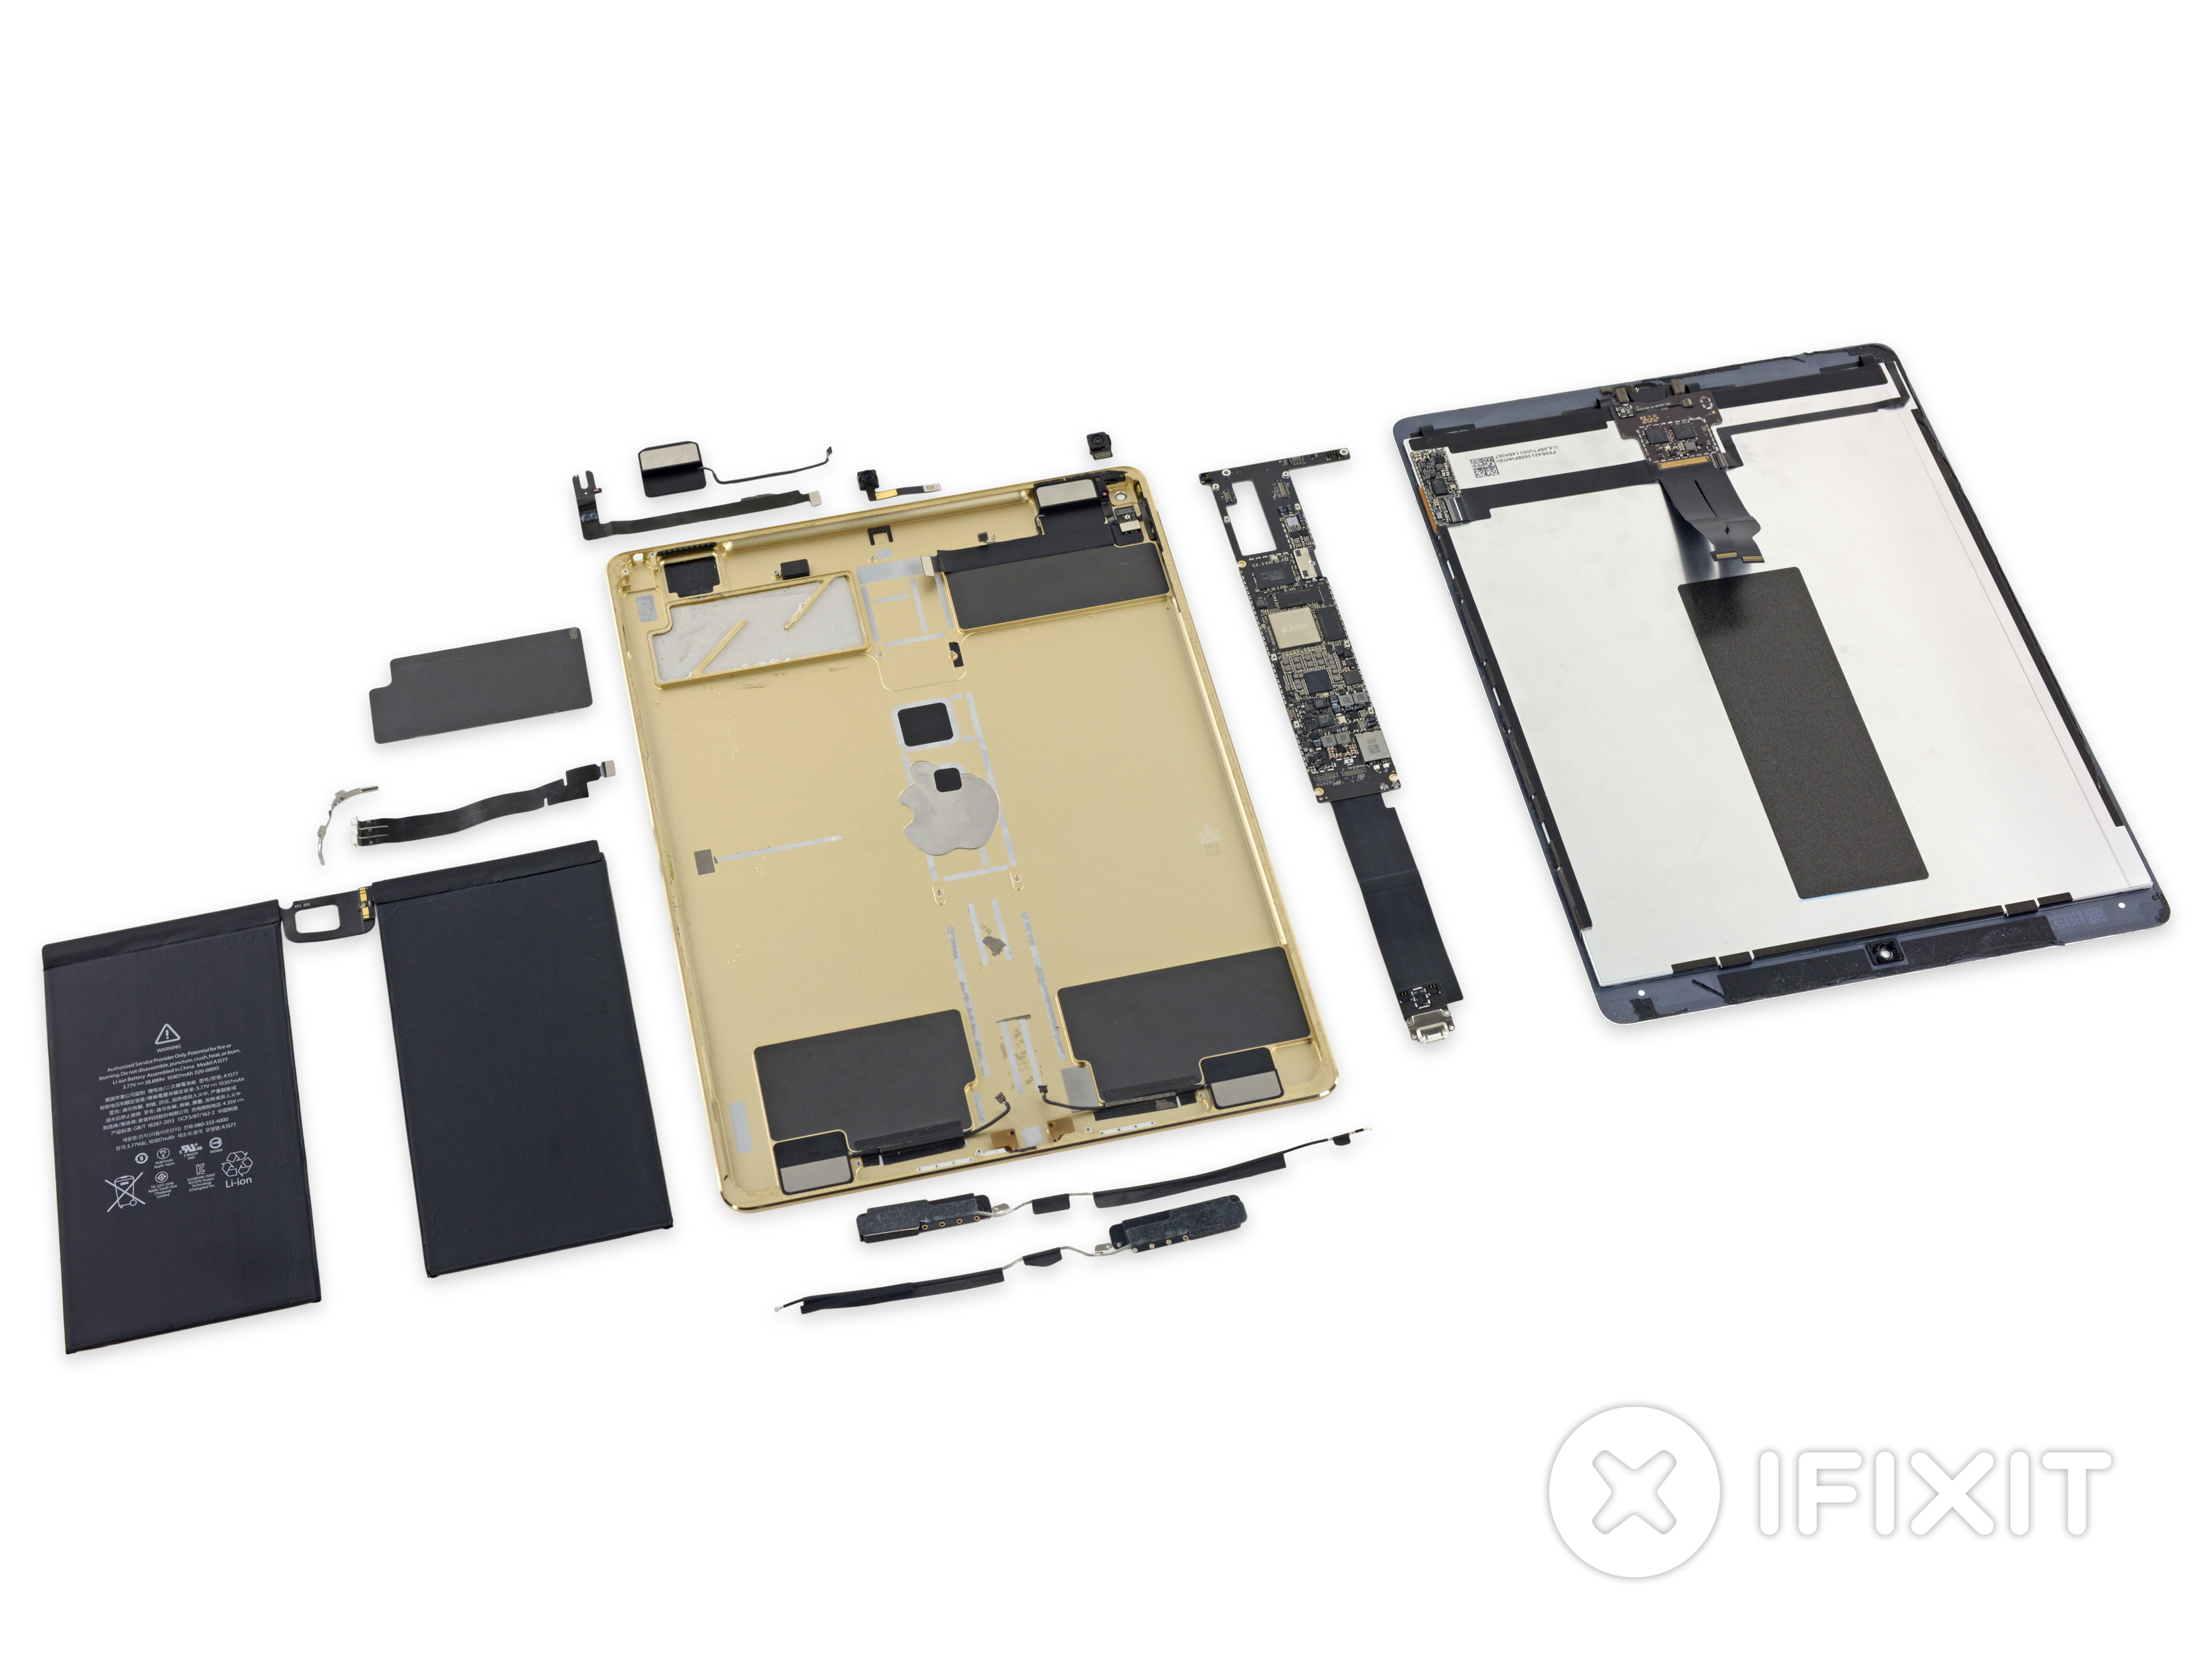 Apple-iPad-Pro-teardown-by-iFixitw